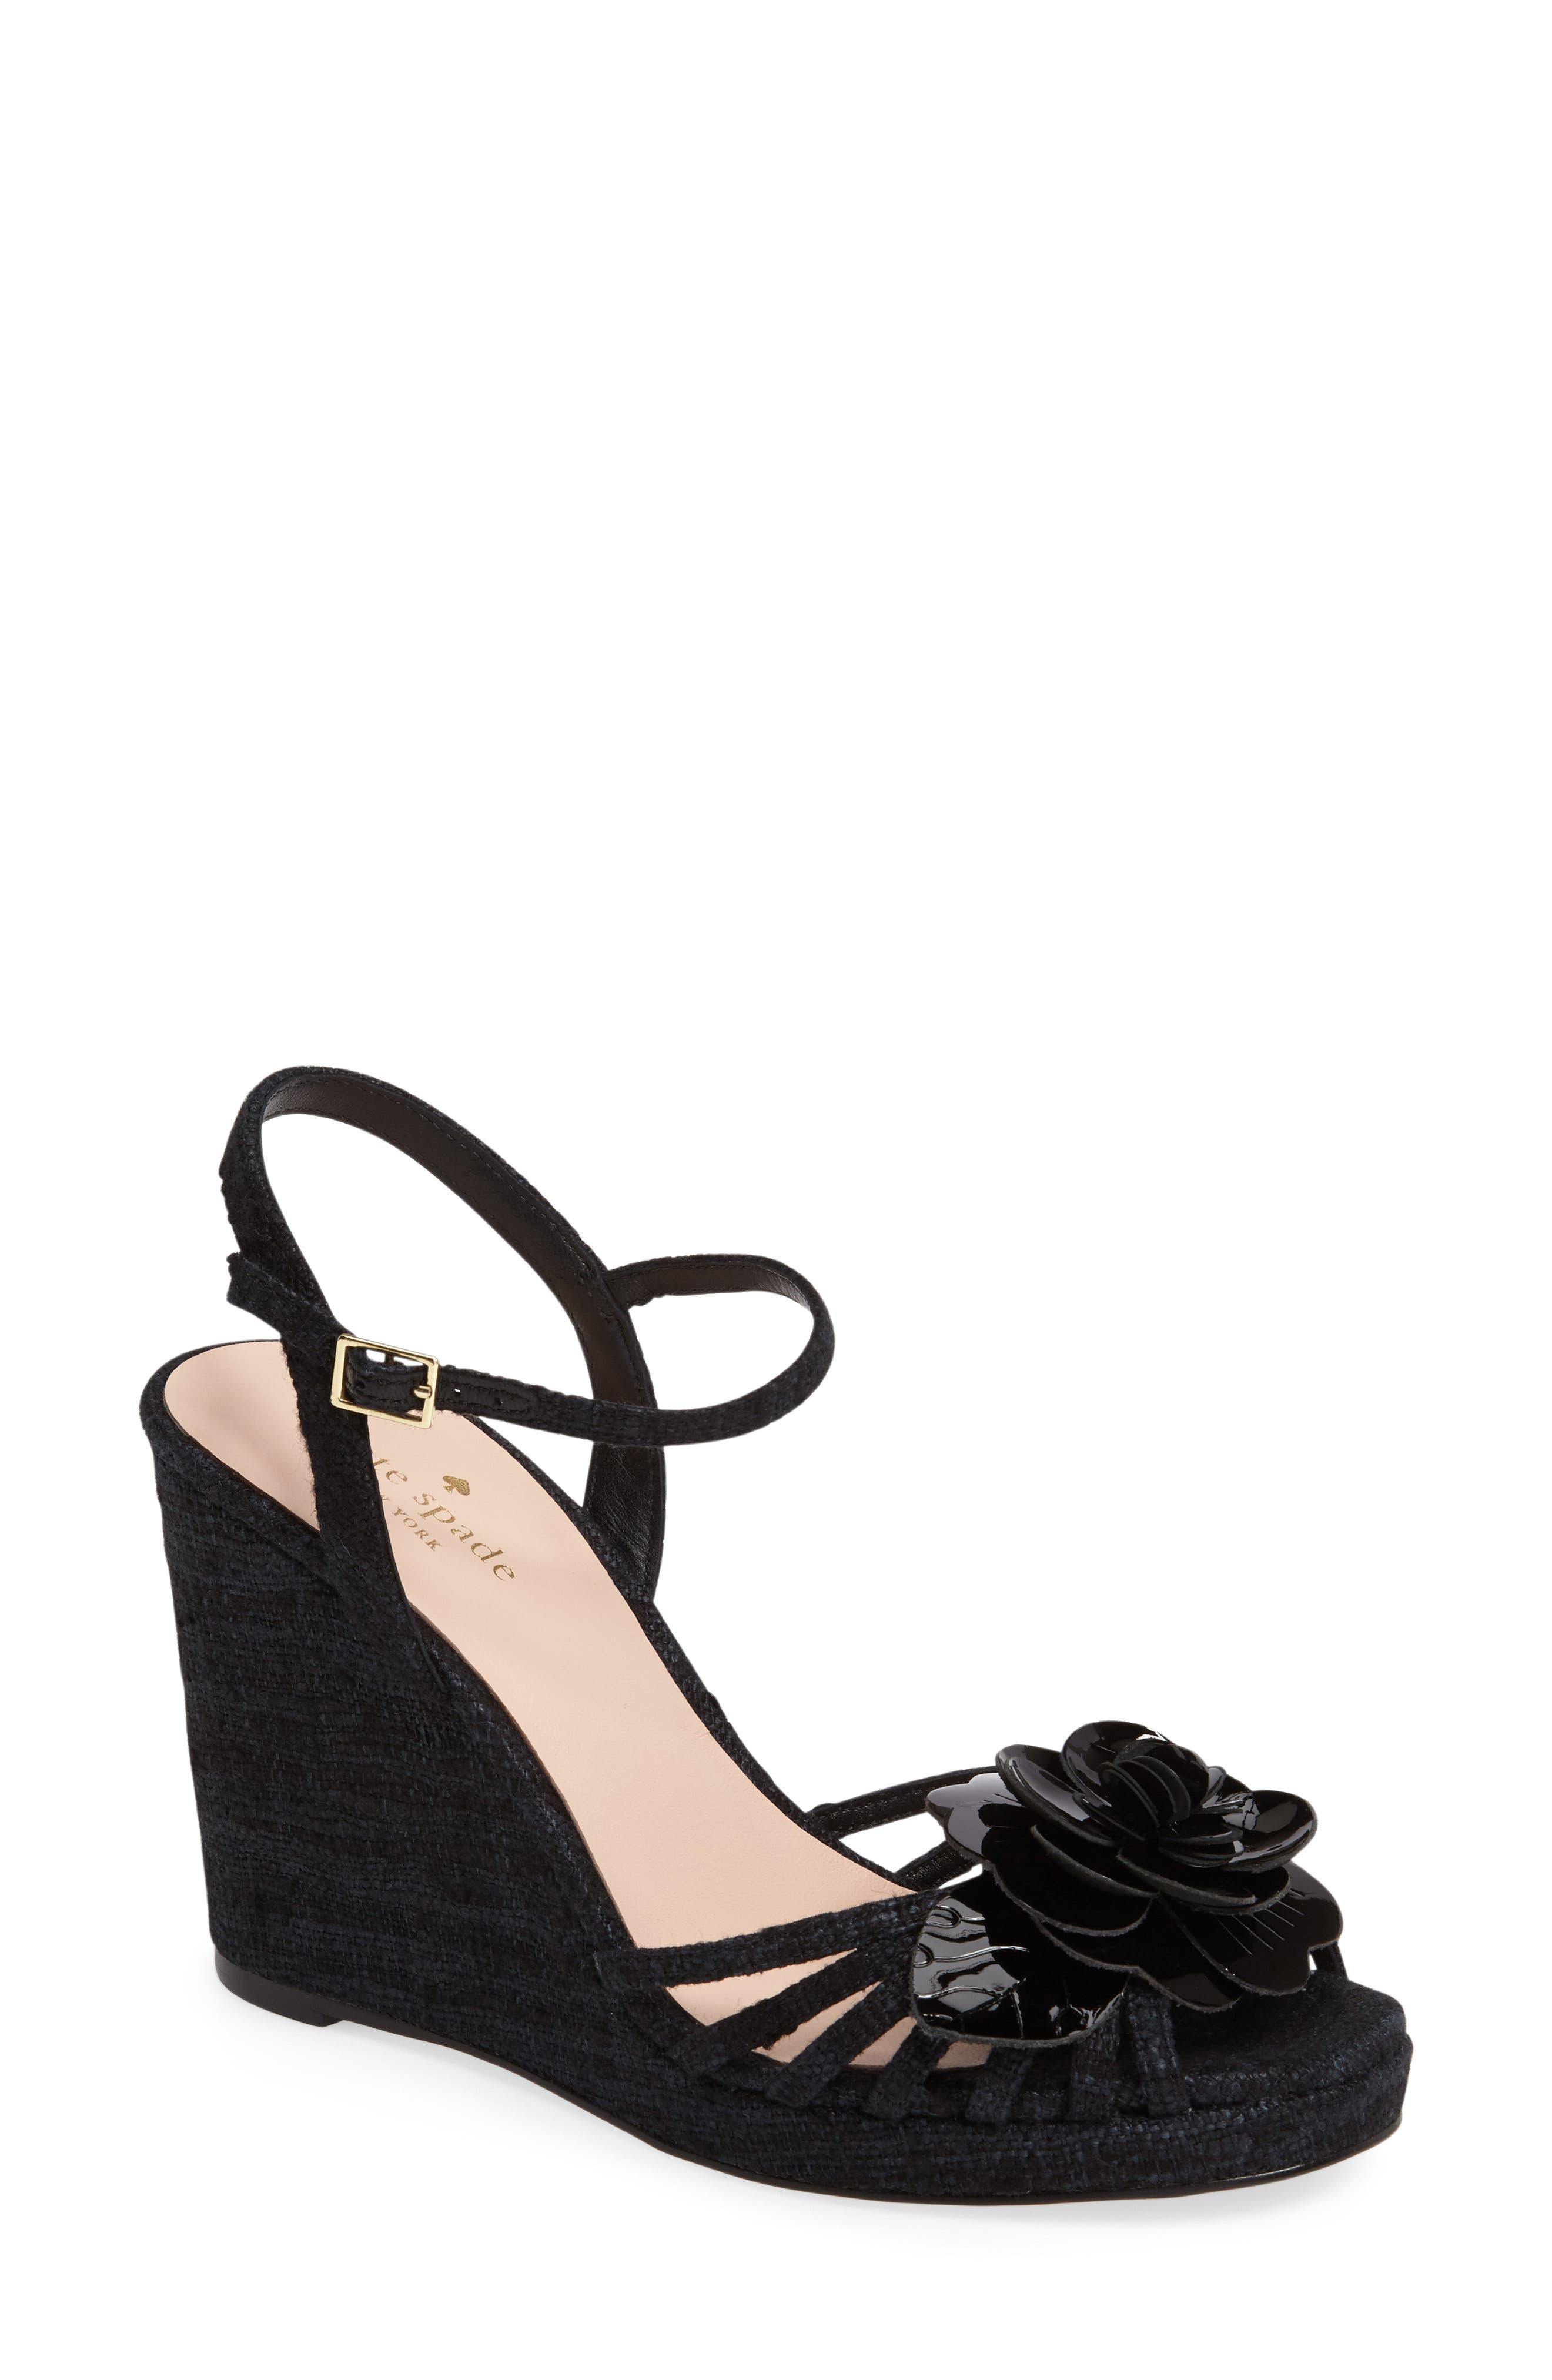 kate spade new york beekman strappy wedge sandal (Women)